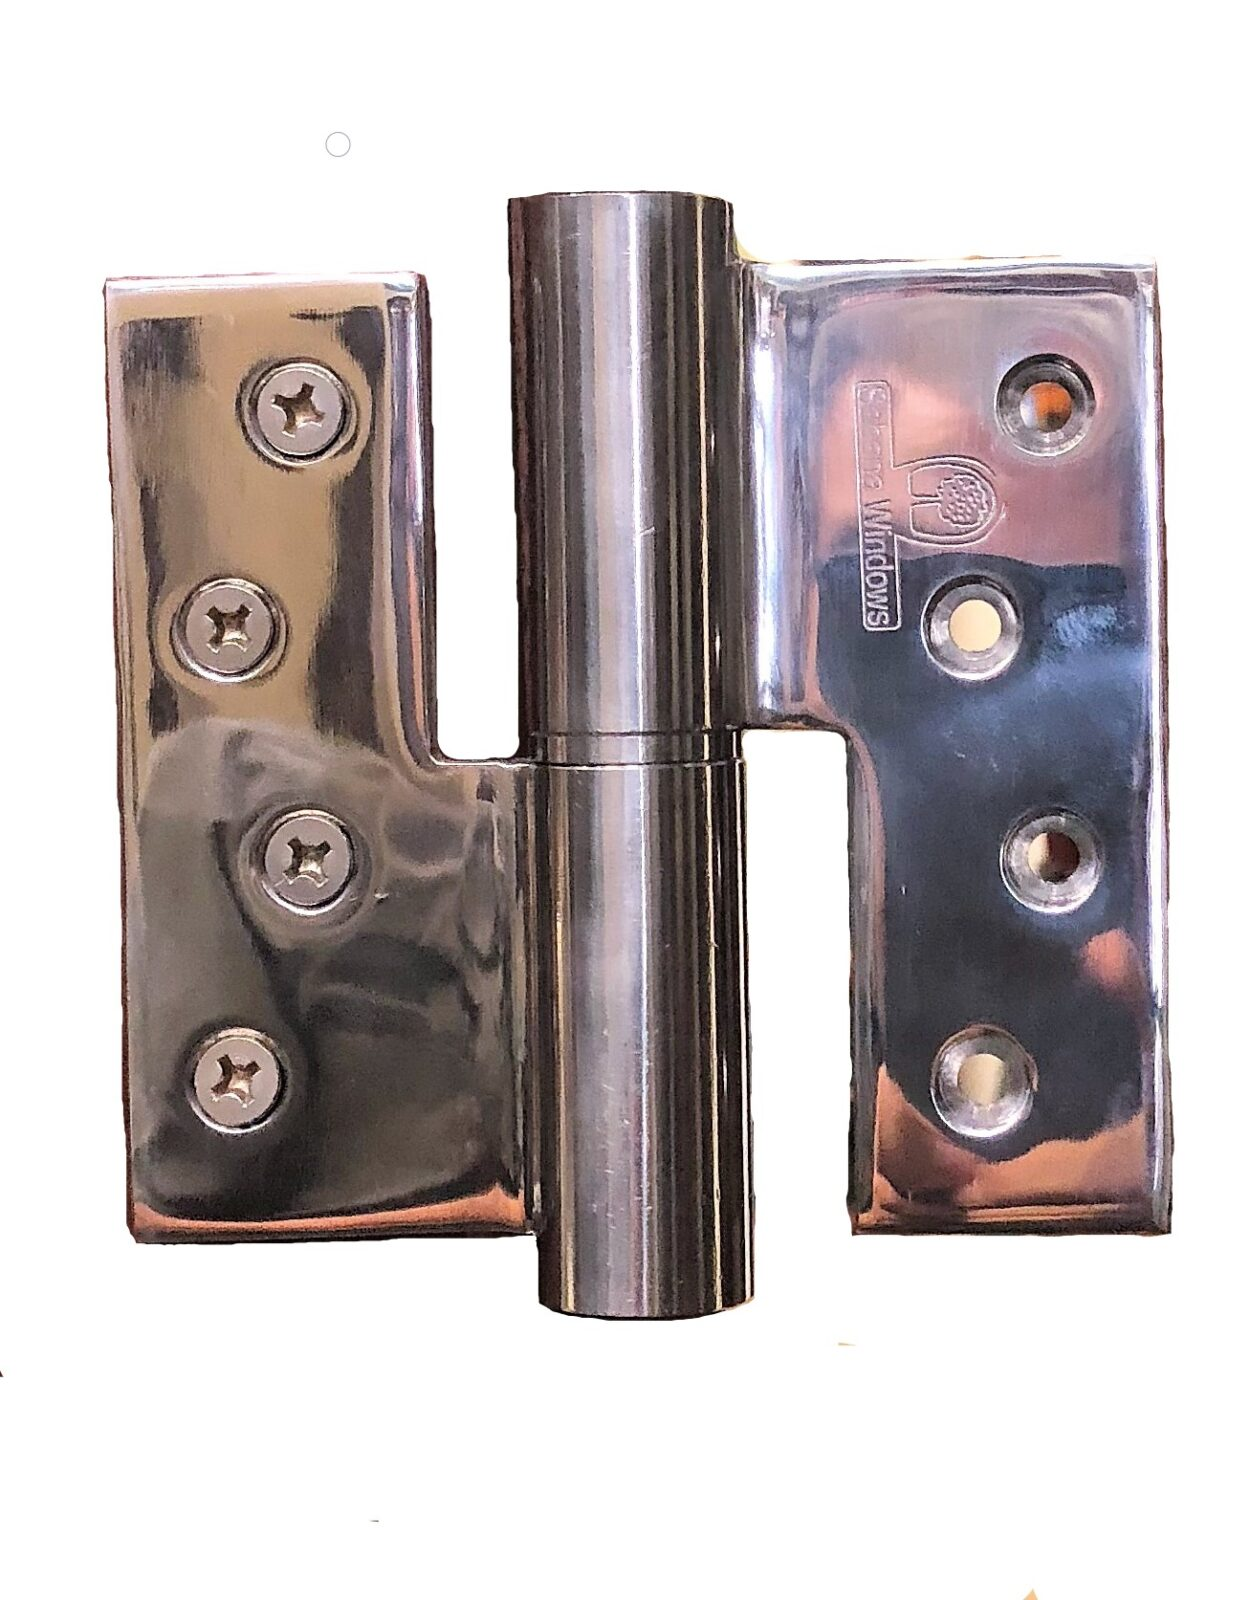 STAINLESS STEEL HINGE FRANKFURT WITHOUT FINIAL